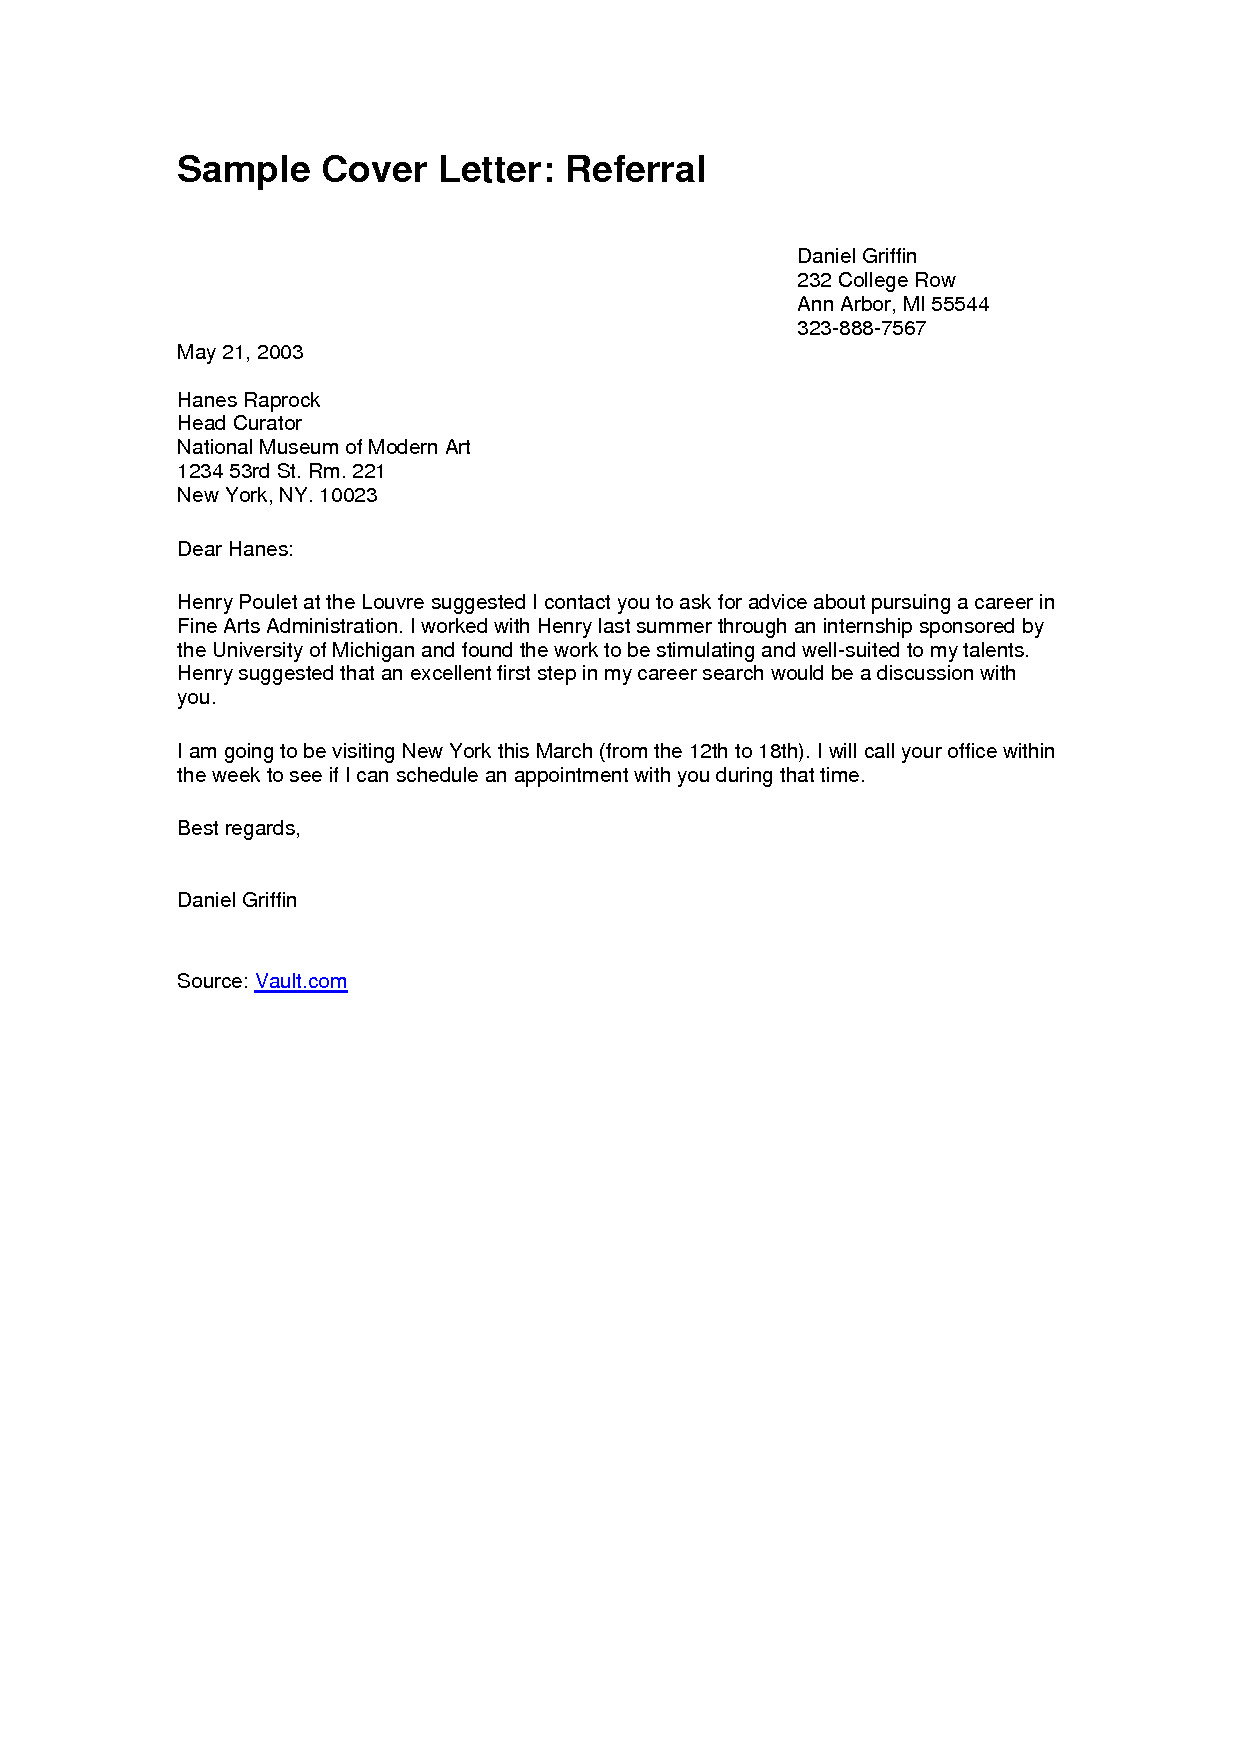 Referred by A Friend Cover Letter Referral Cover Letter Project Scope Template